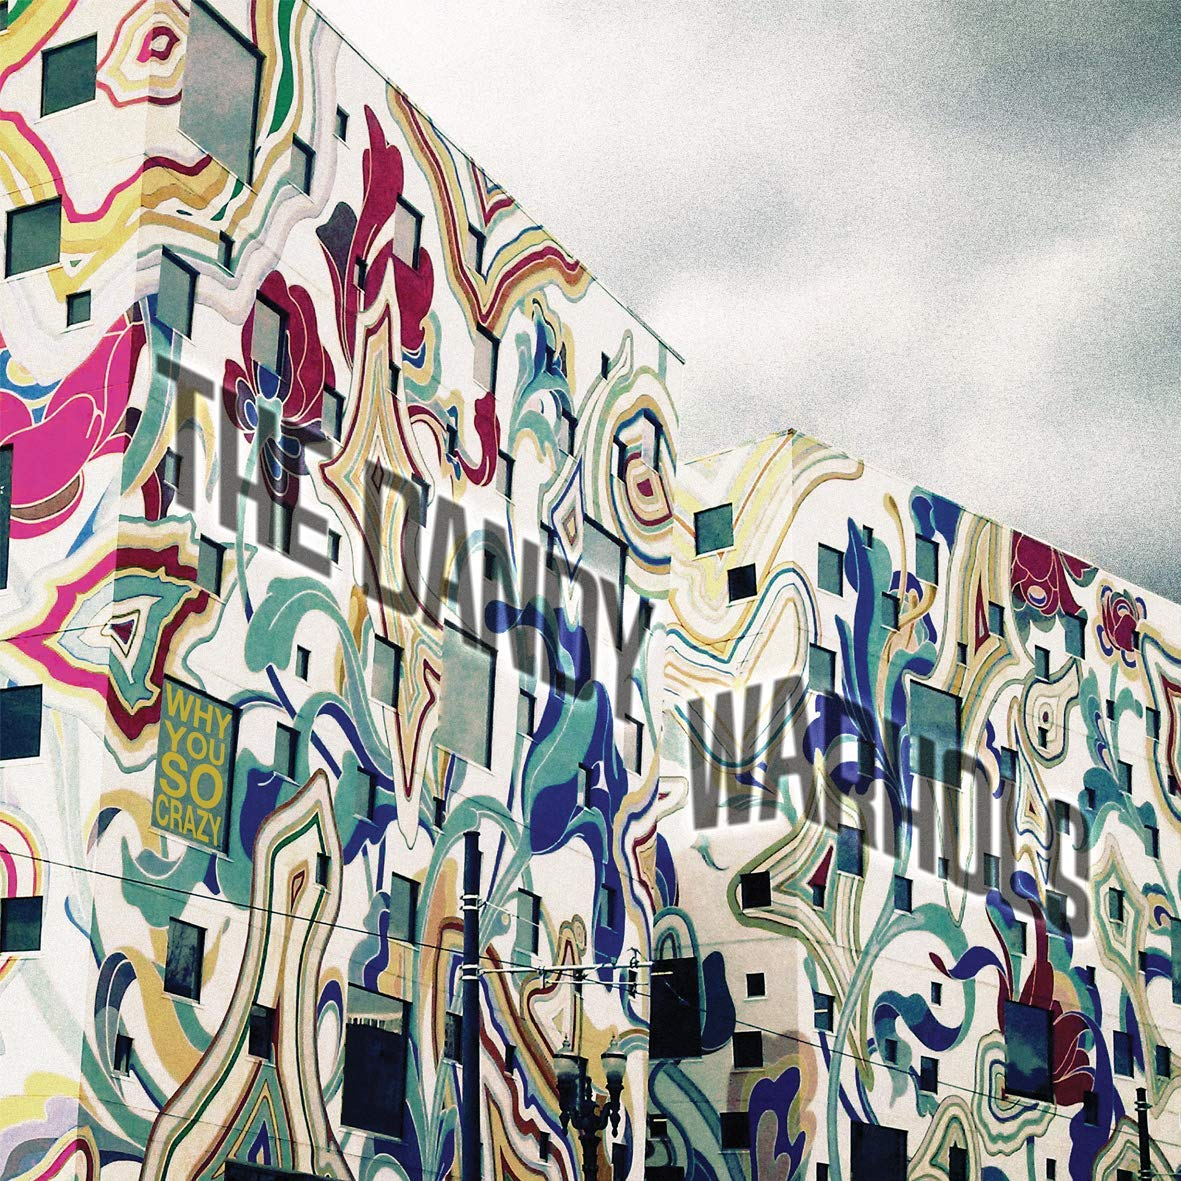 The Dandy Warhols – Why You So Crazy – Nouvel album